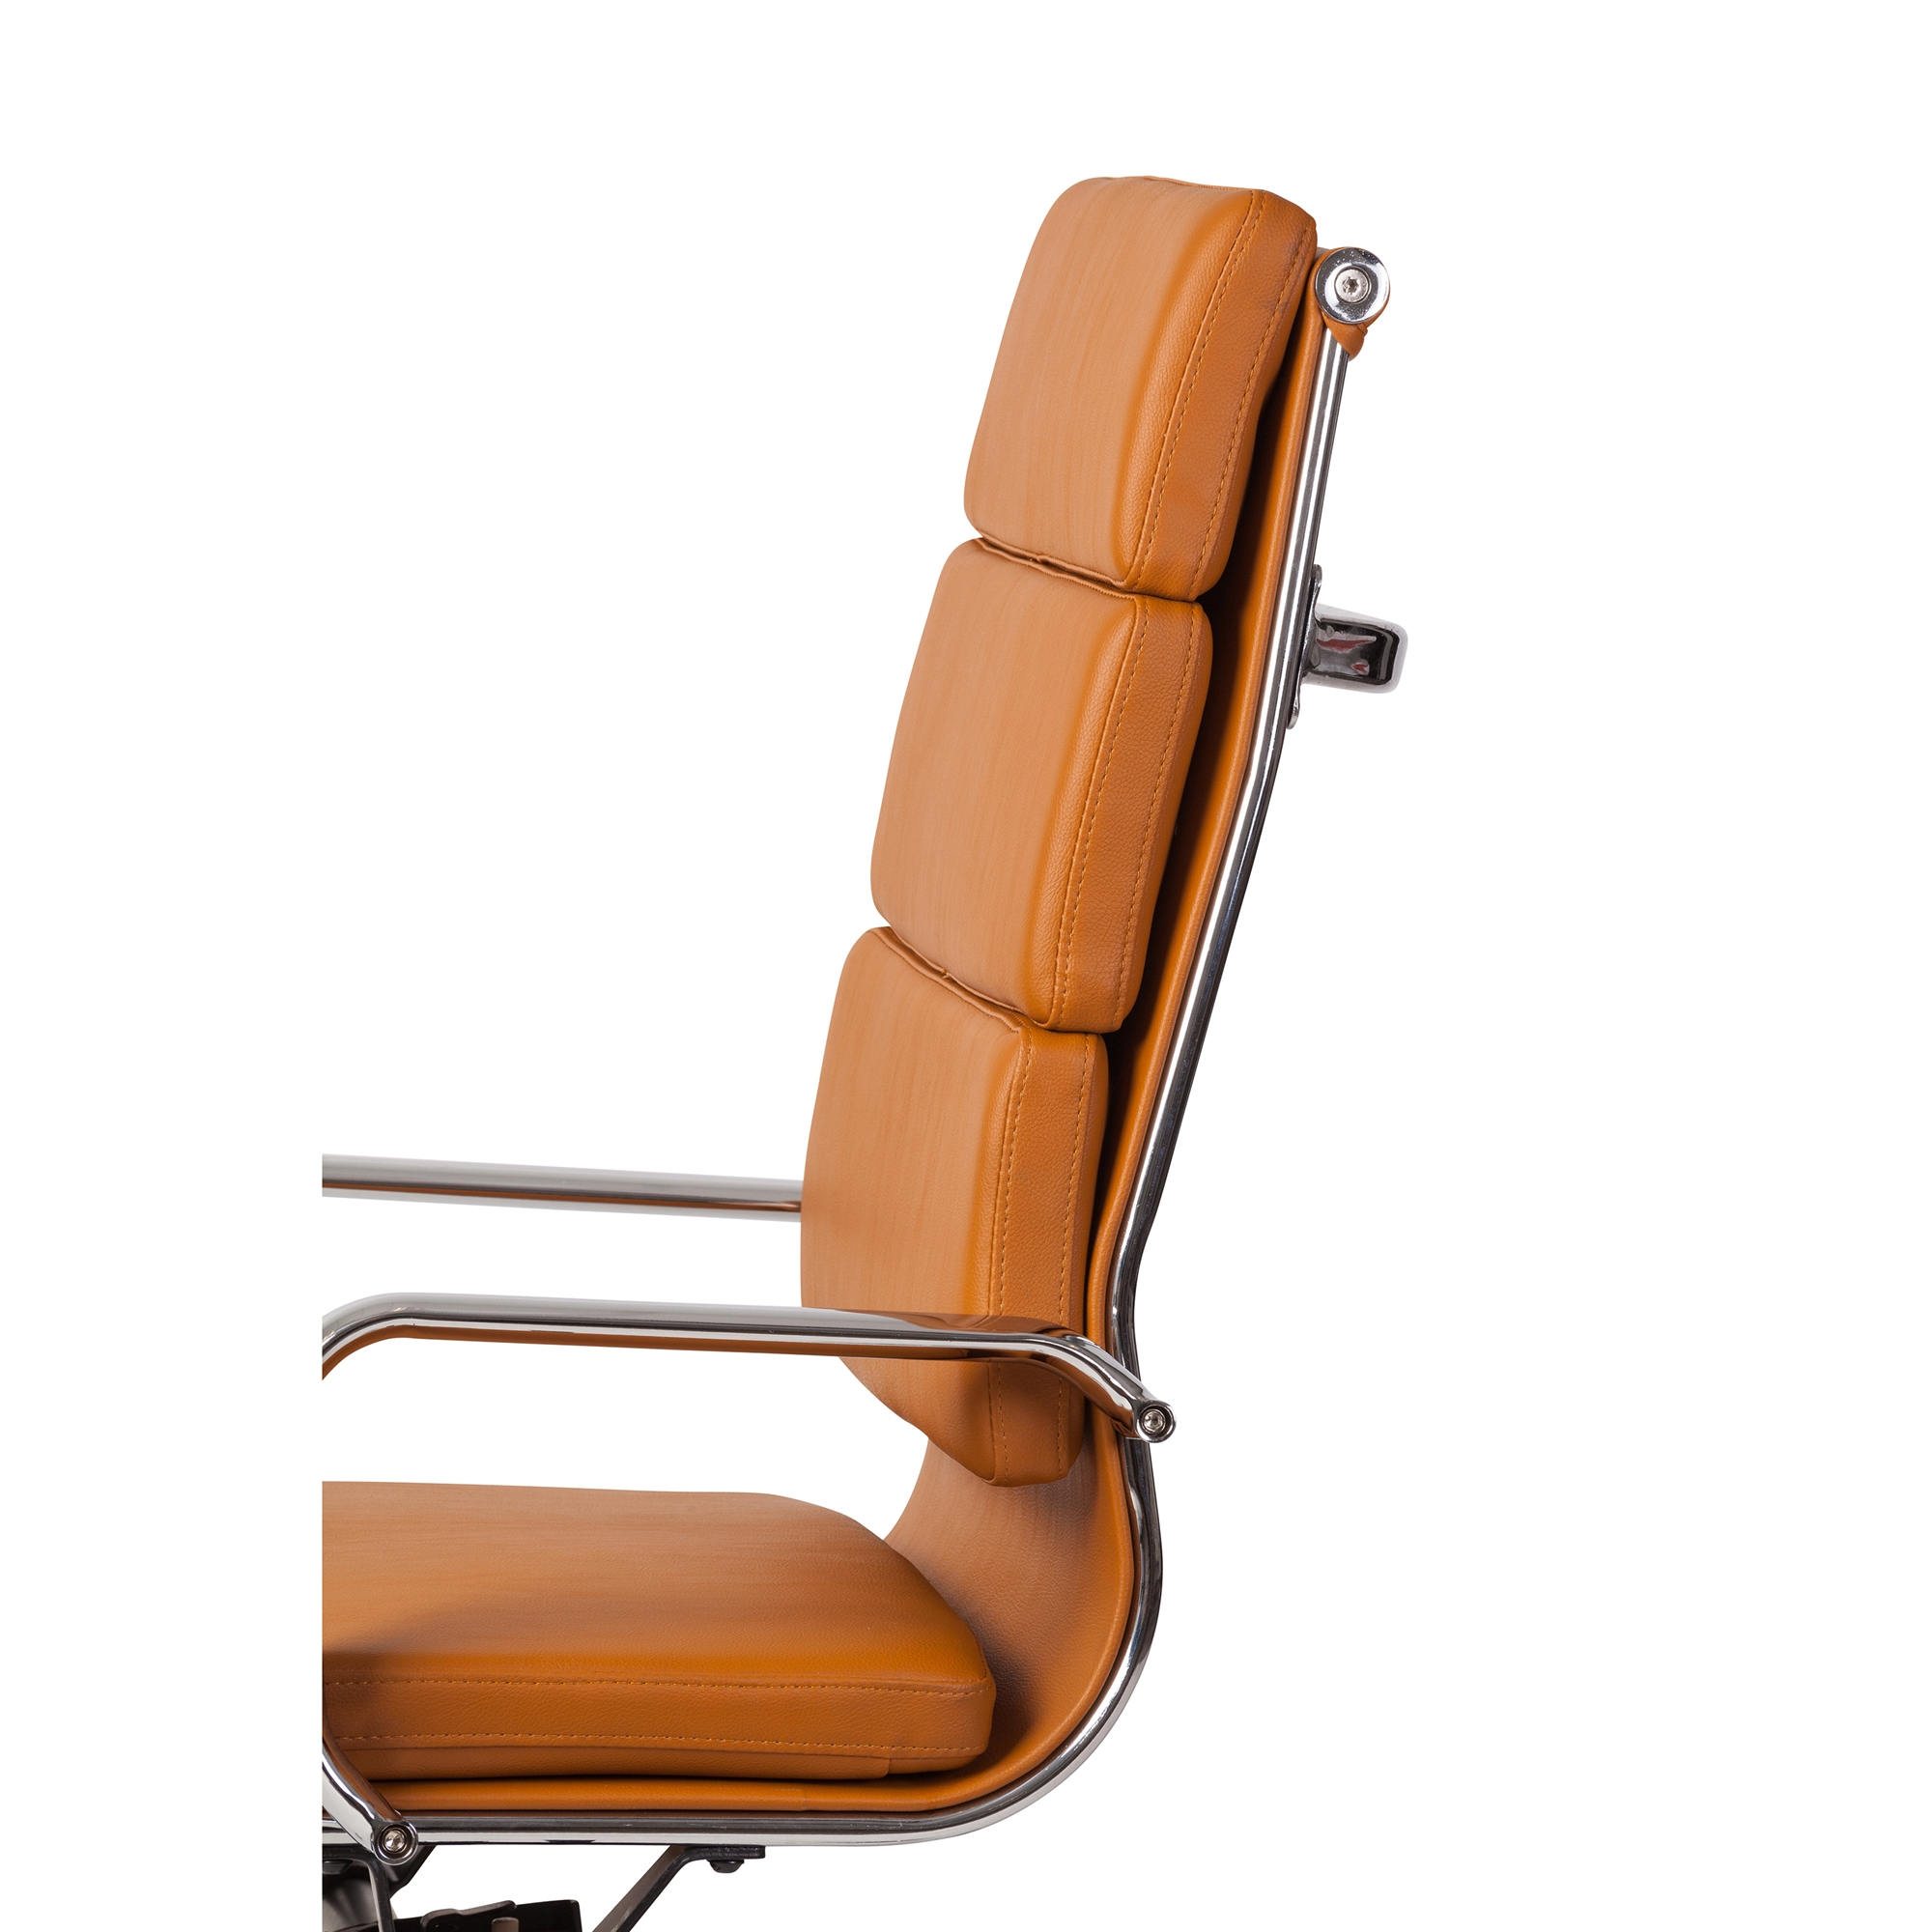 Astounding Mid Century Modern High Back Office Chair In Basketball Brown Leather Pabps2019 Chair Design Images Pabps2019Com